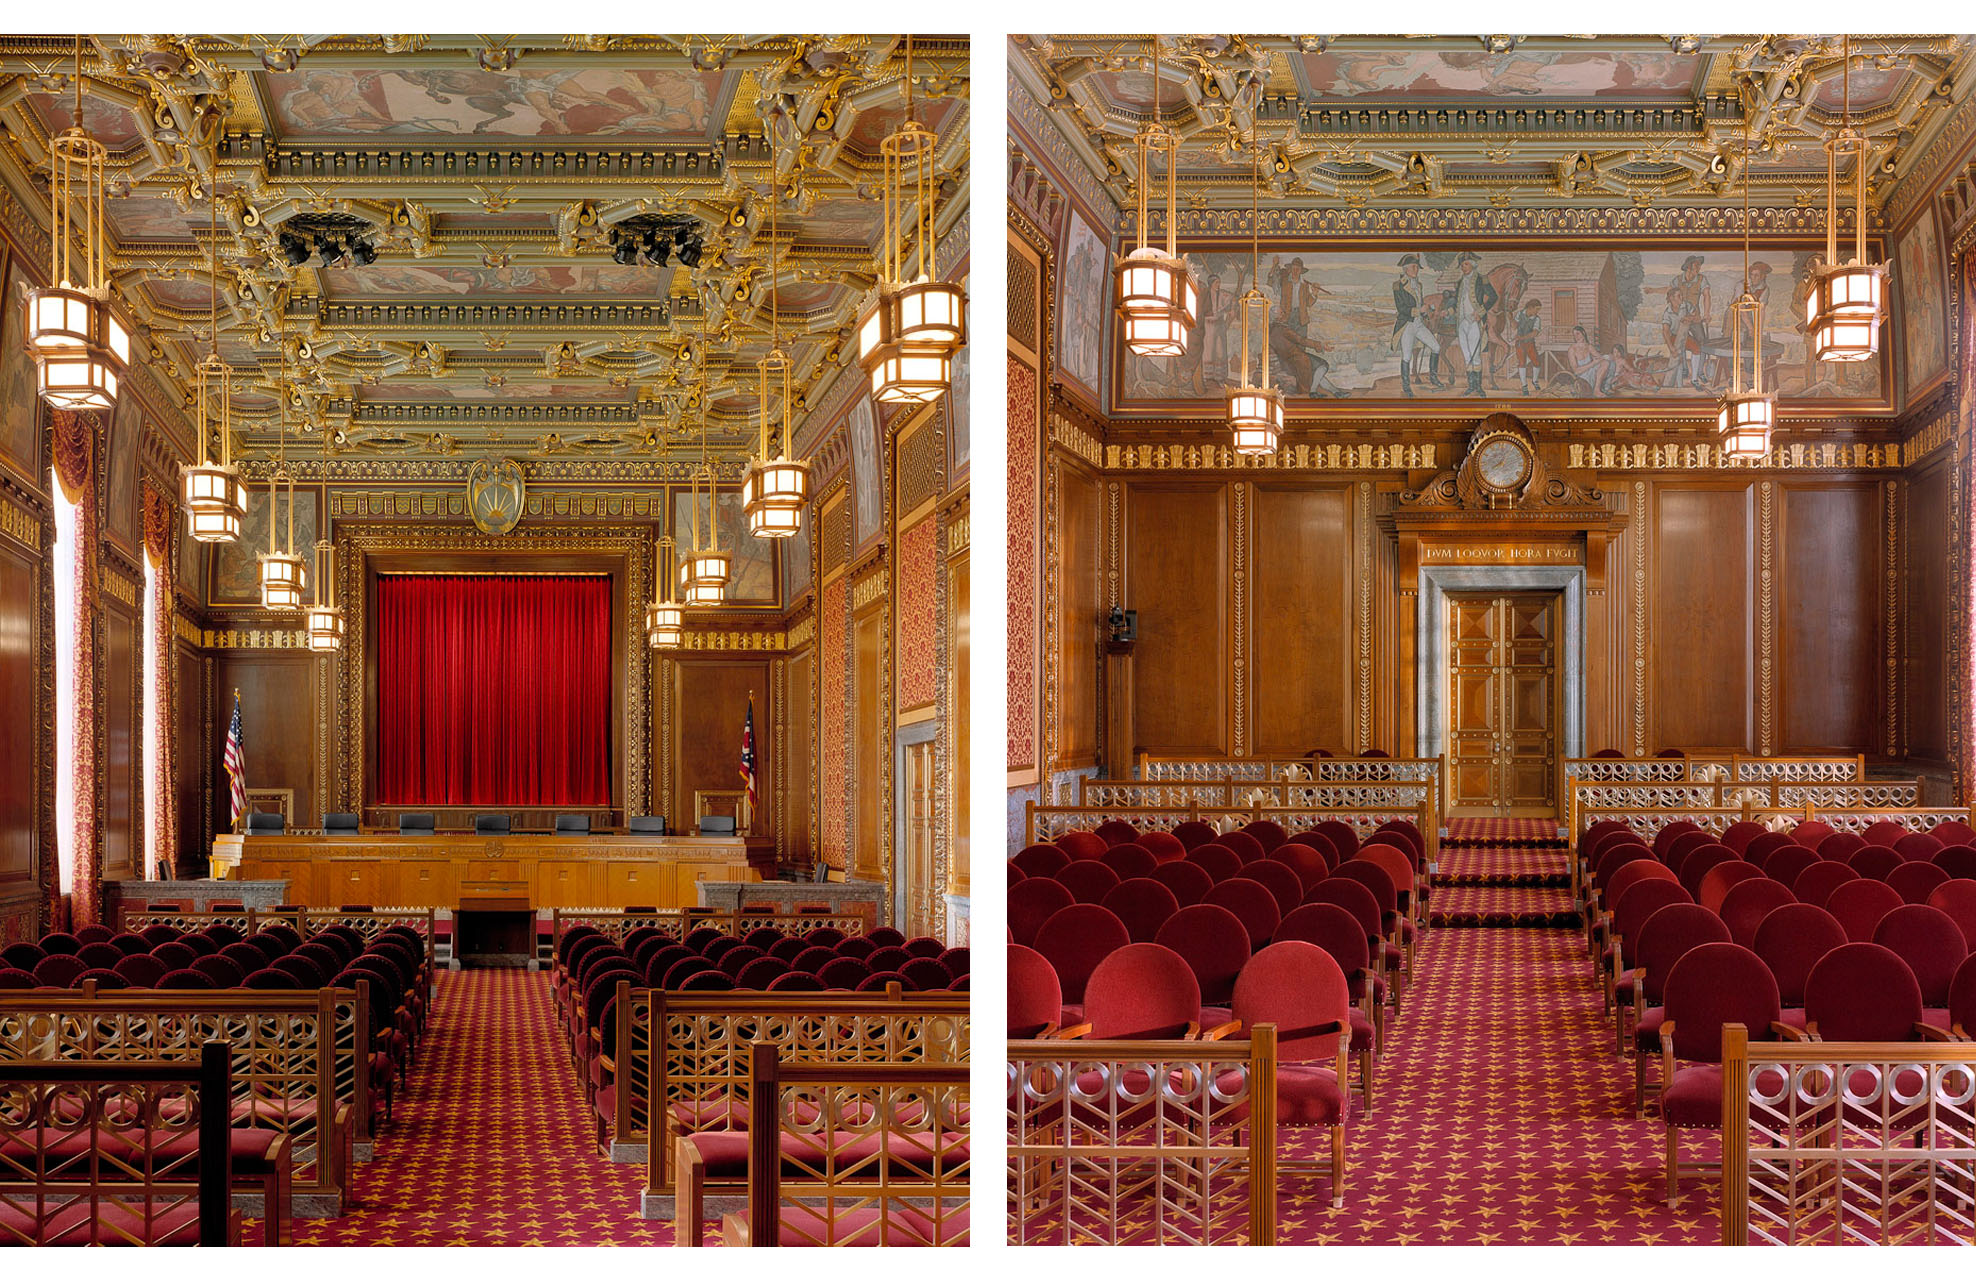 Ohio Supreme Court Renovation by Schooley Caldwell Associates